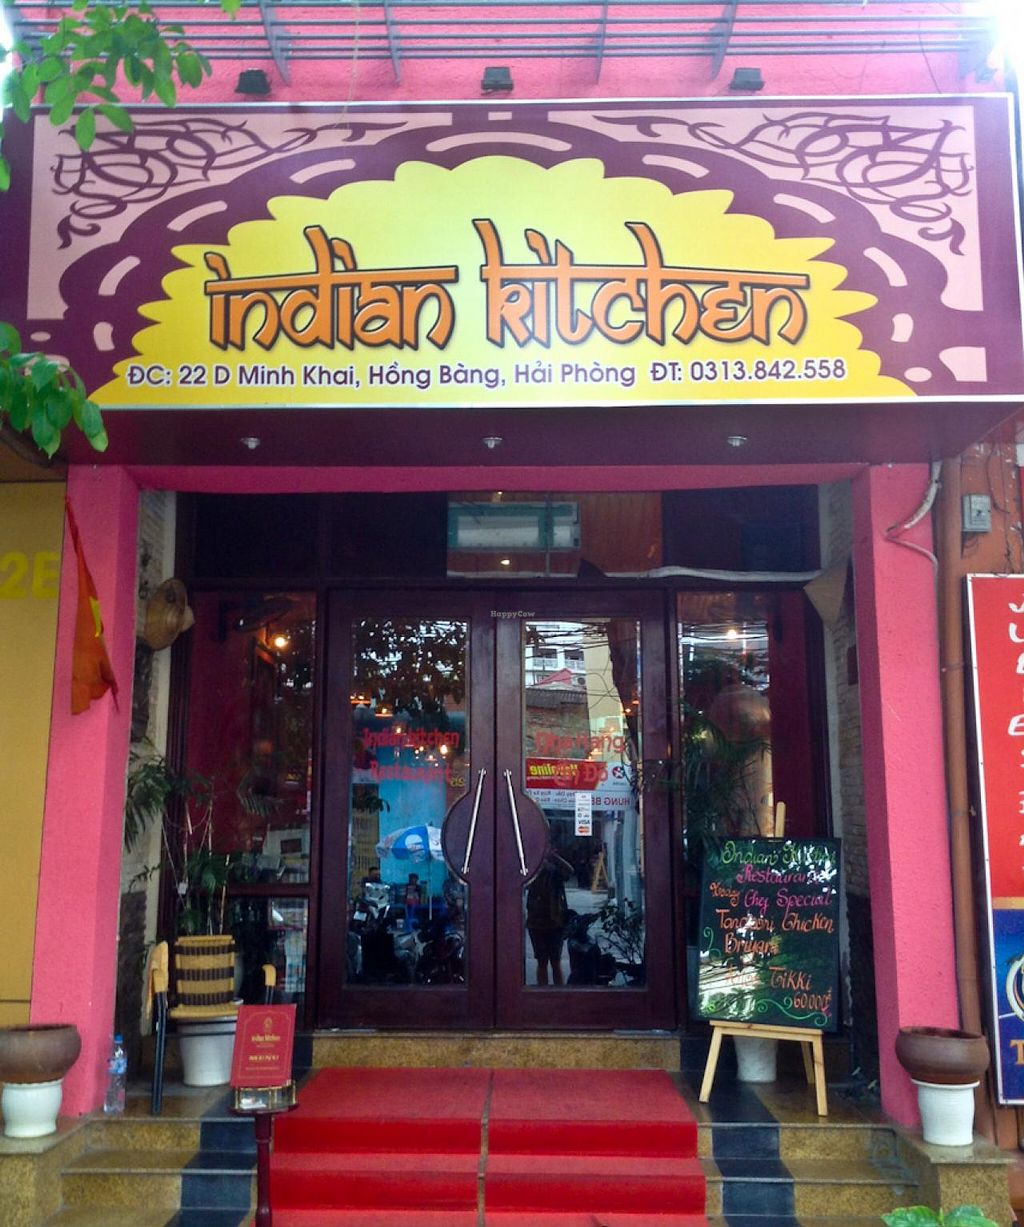 """Photo of Indian Kitchen  by <a href=""""/members/profile/Ranks42"""">Ranks42</a> <br/>Restaurant Entrance <br/> July 11, 2014  - <a href='/contact/abuse/image/48741/73701'>Report</a>"""